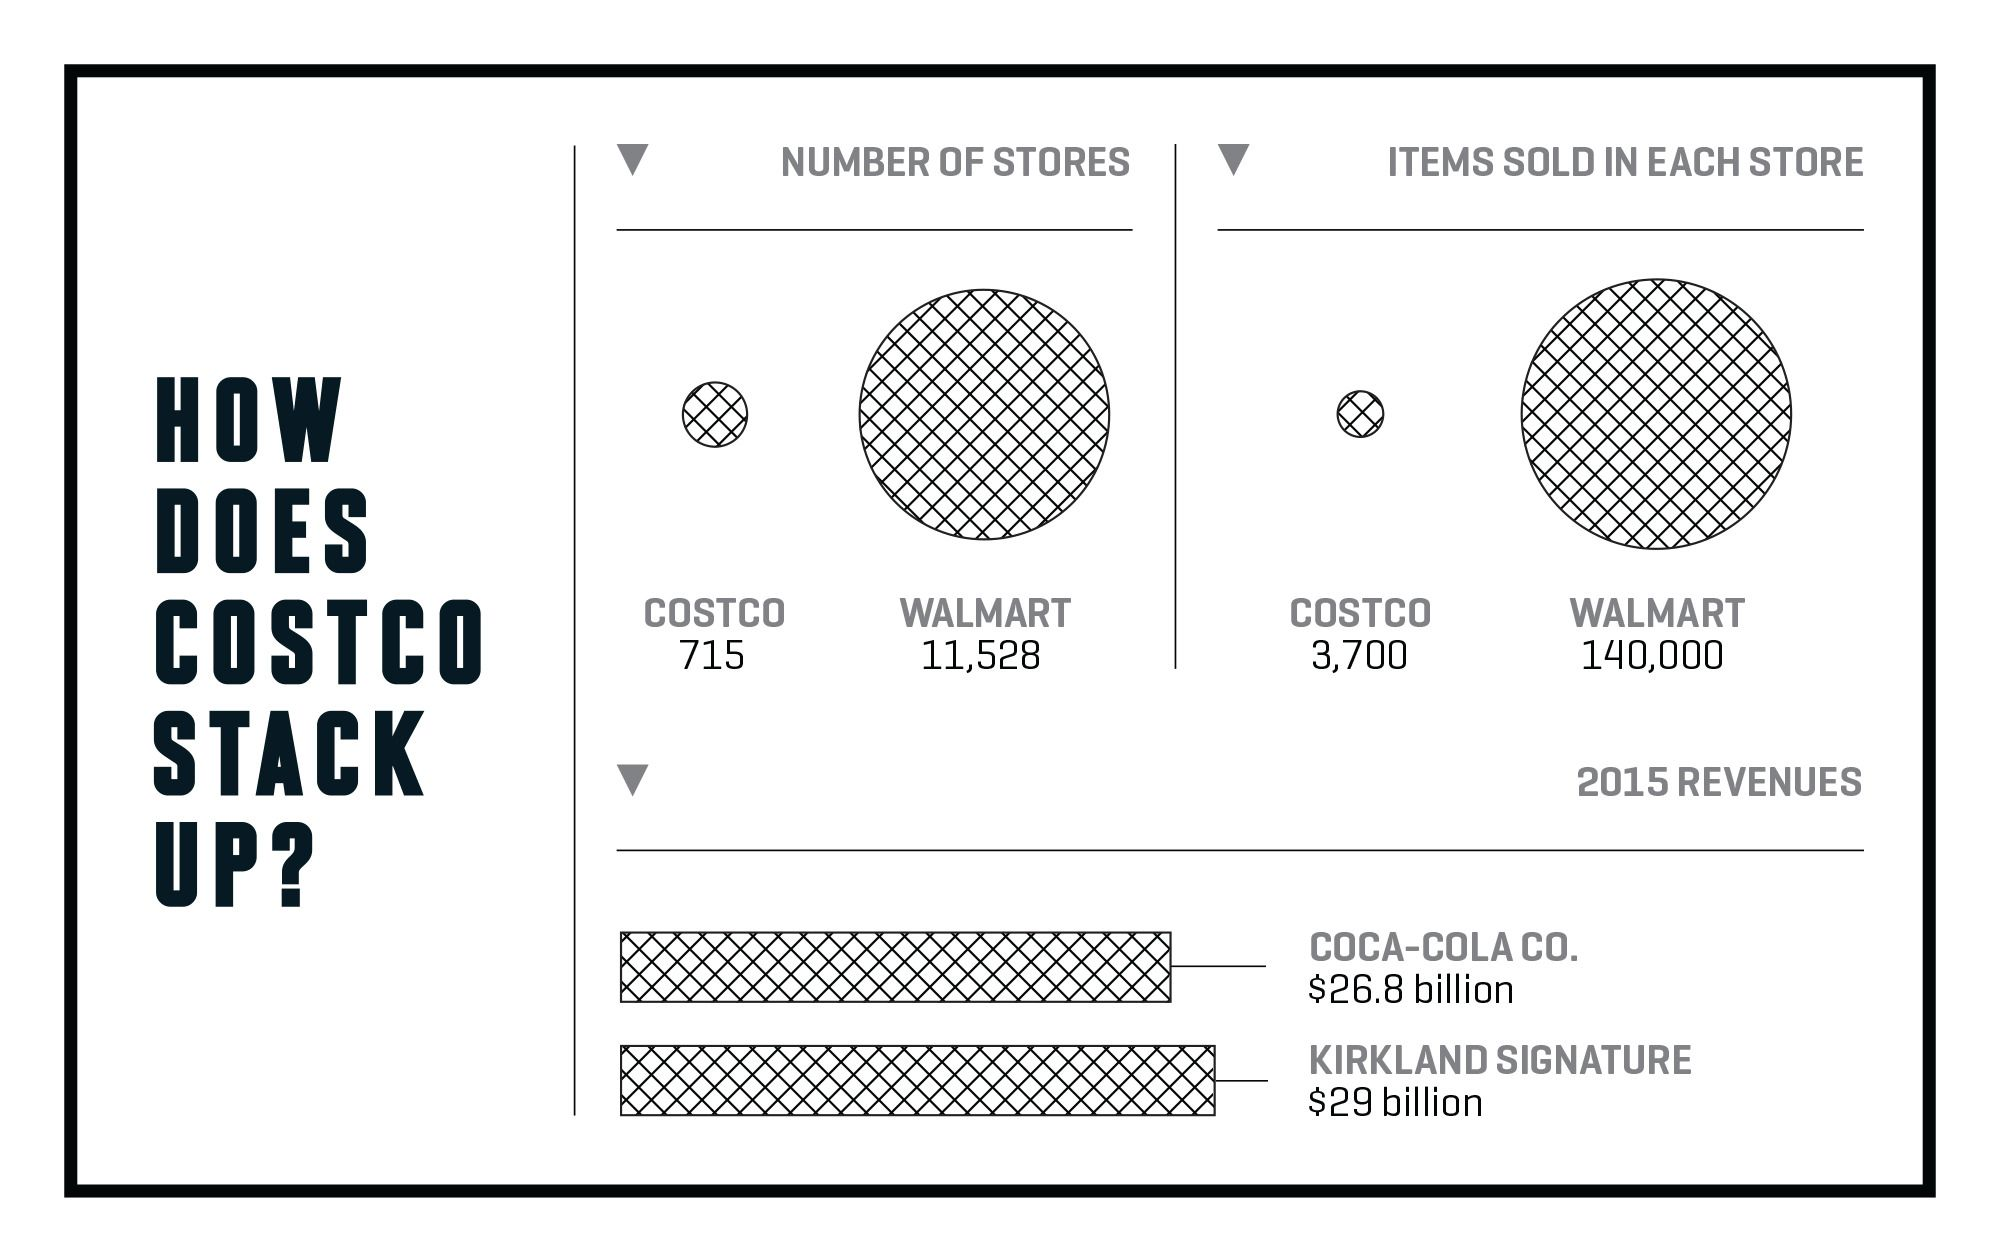 market structure of costco Costco is the largest warehouse retailer in the world, generating more than $100 billion in revenues the retailer attracts customers with its low prices, good quality private label brands.